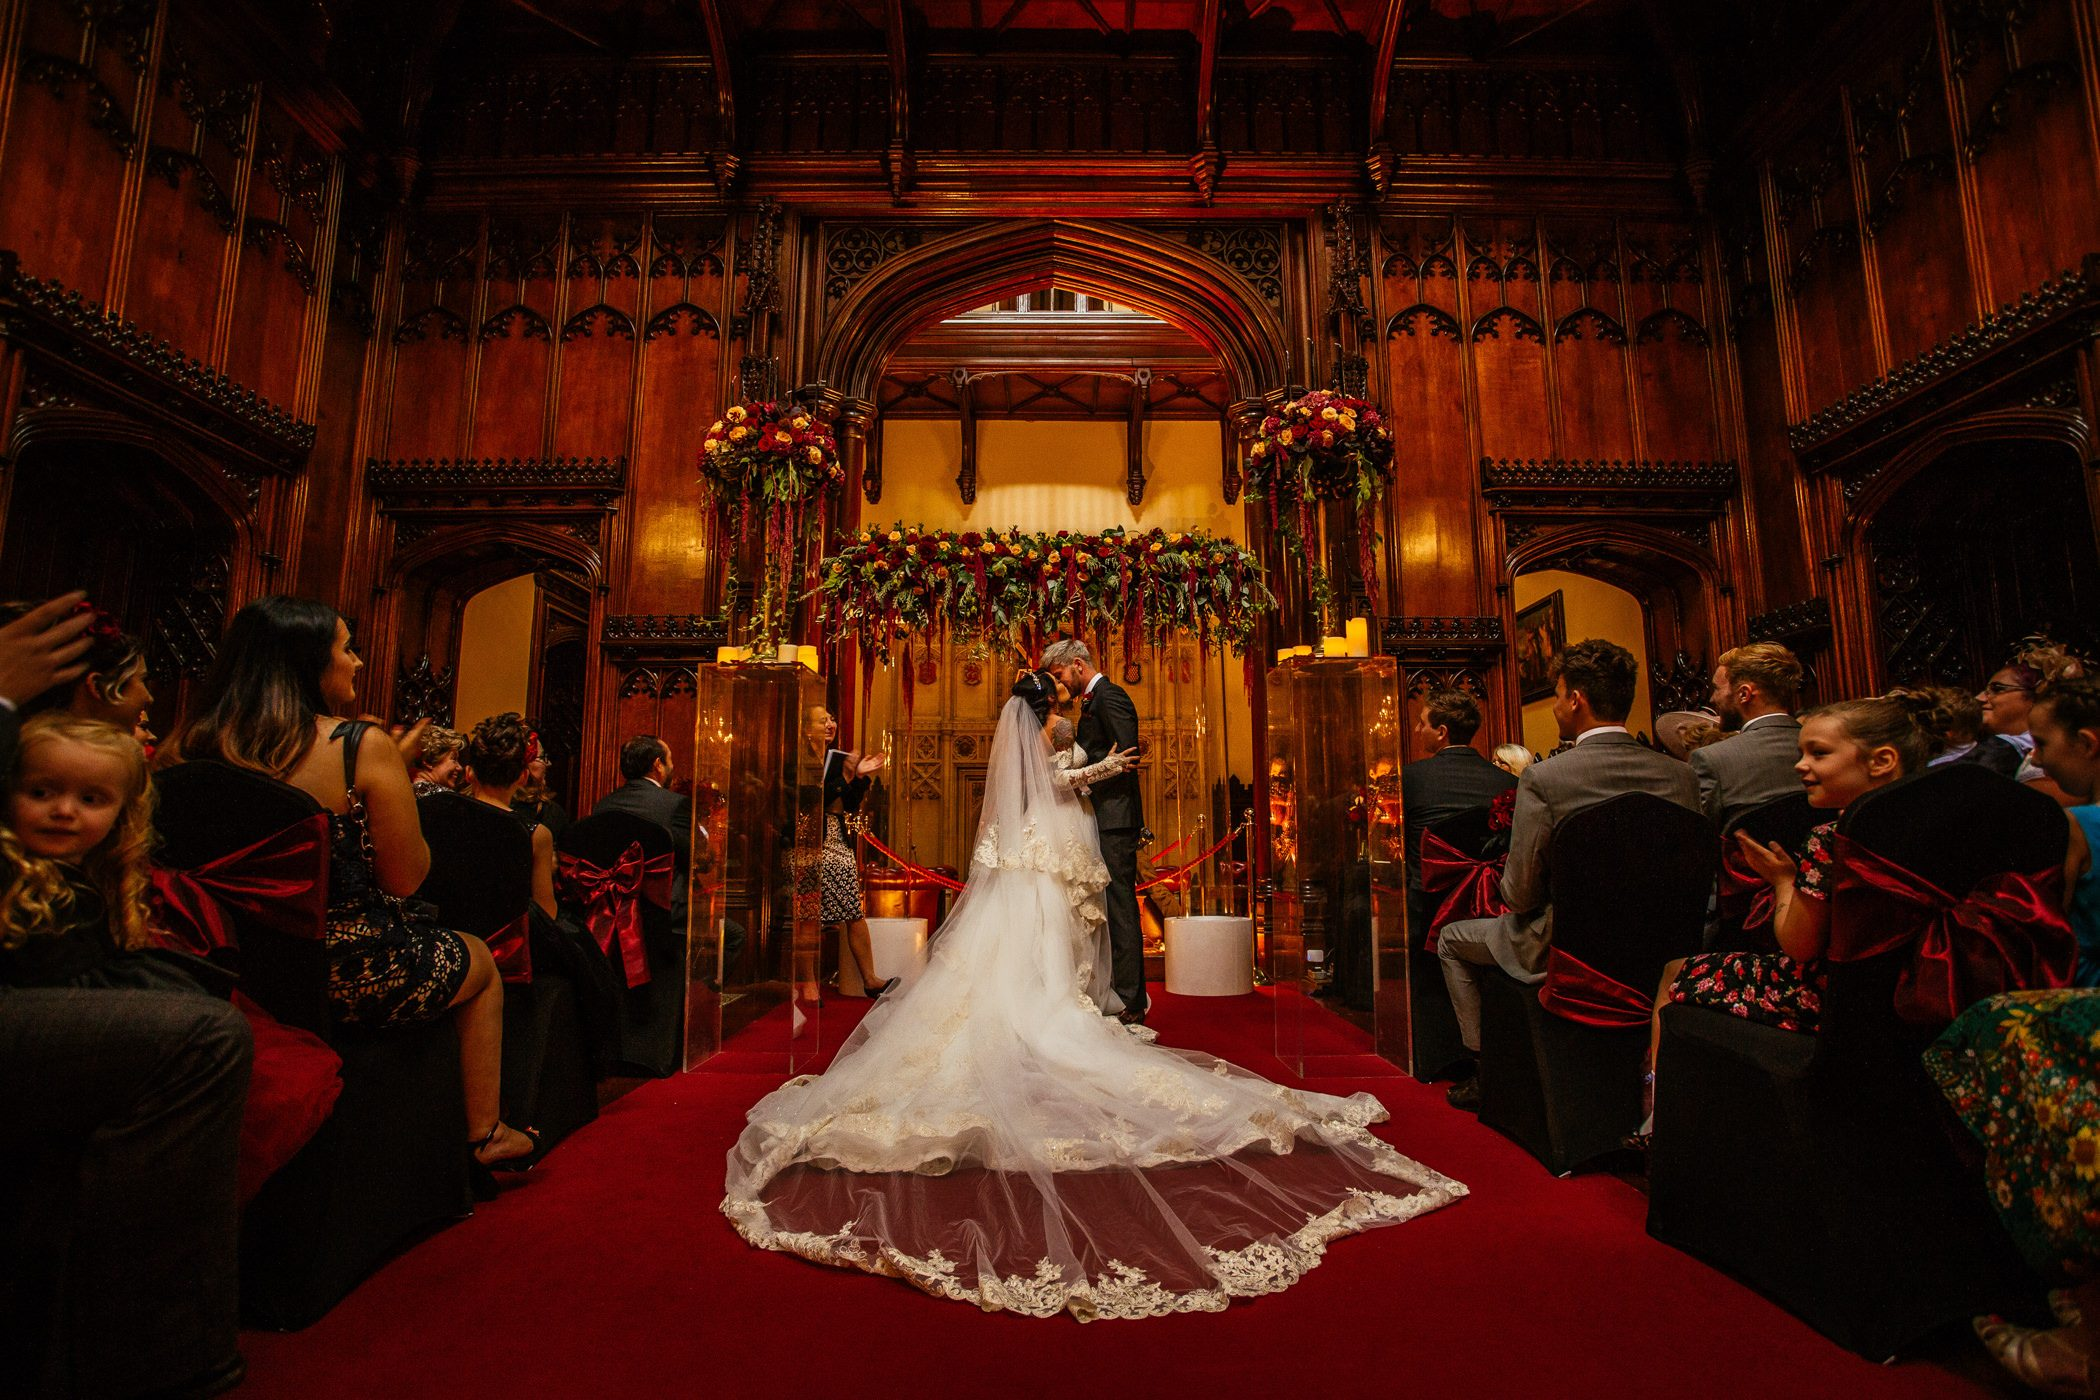 Ð?аÑ?Ñ?инки по запÑ?оÑ?Ñ? castle allerton wedding